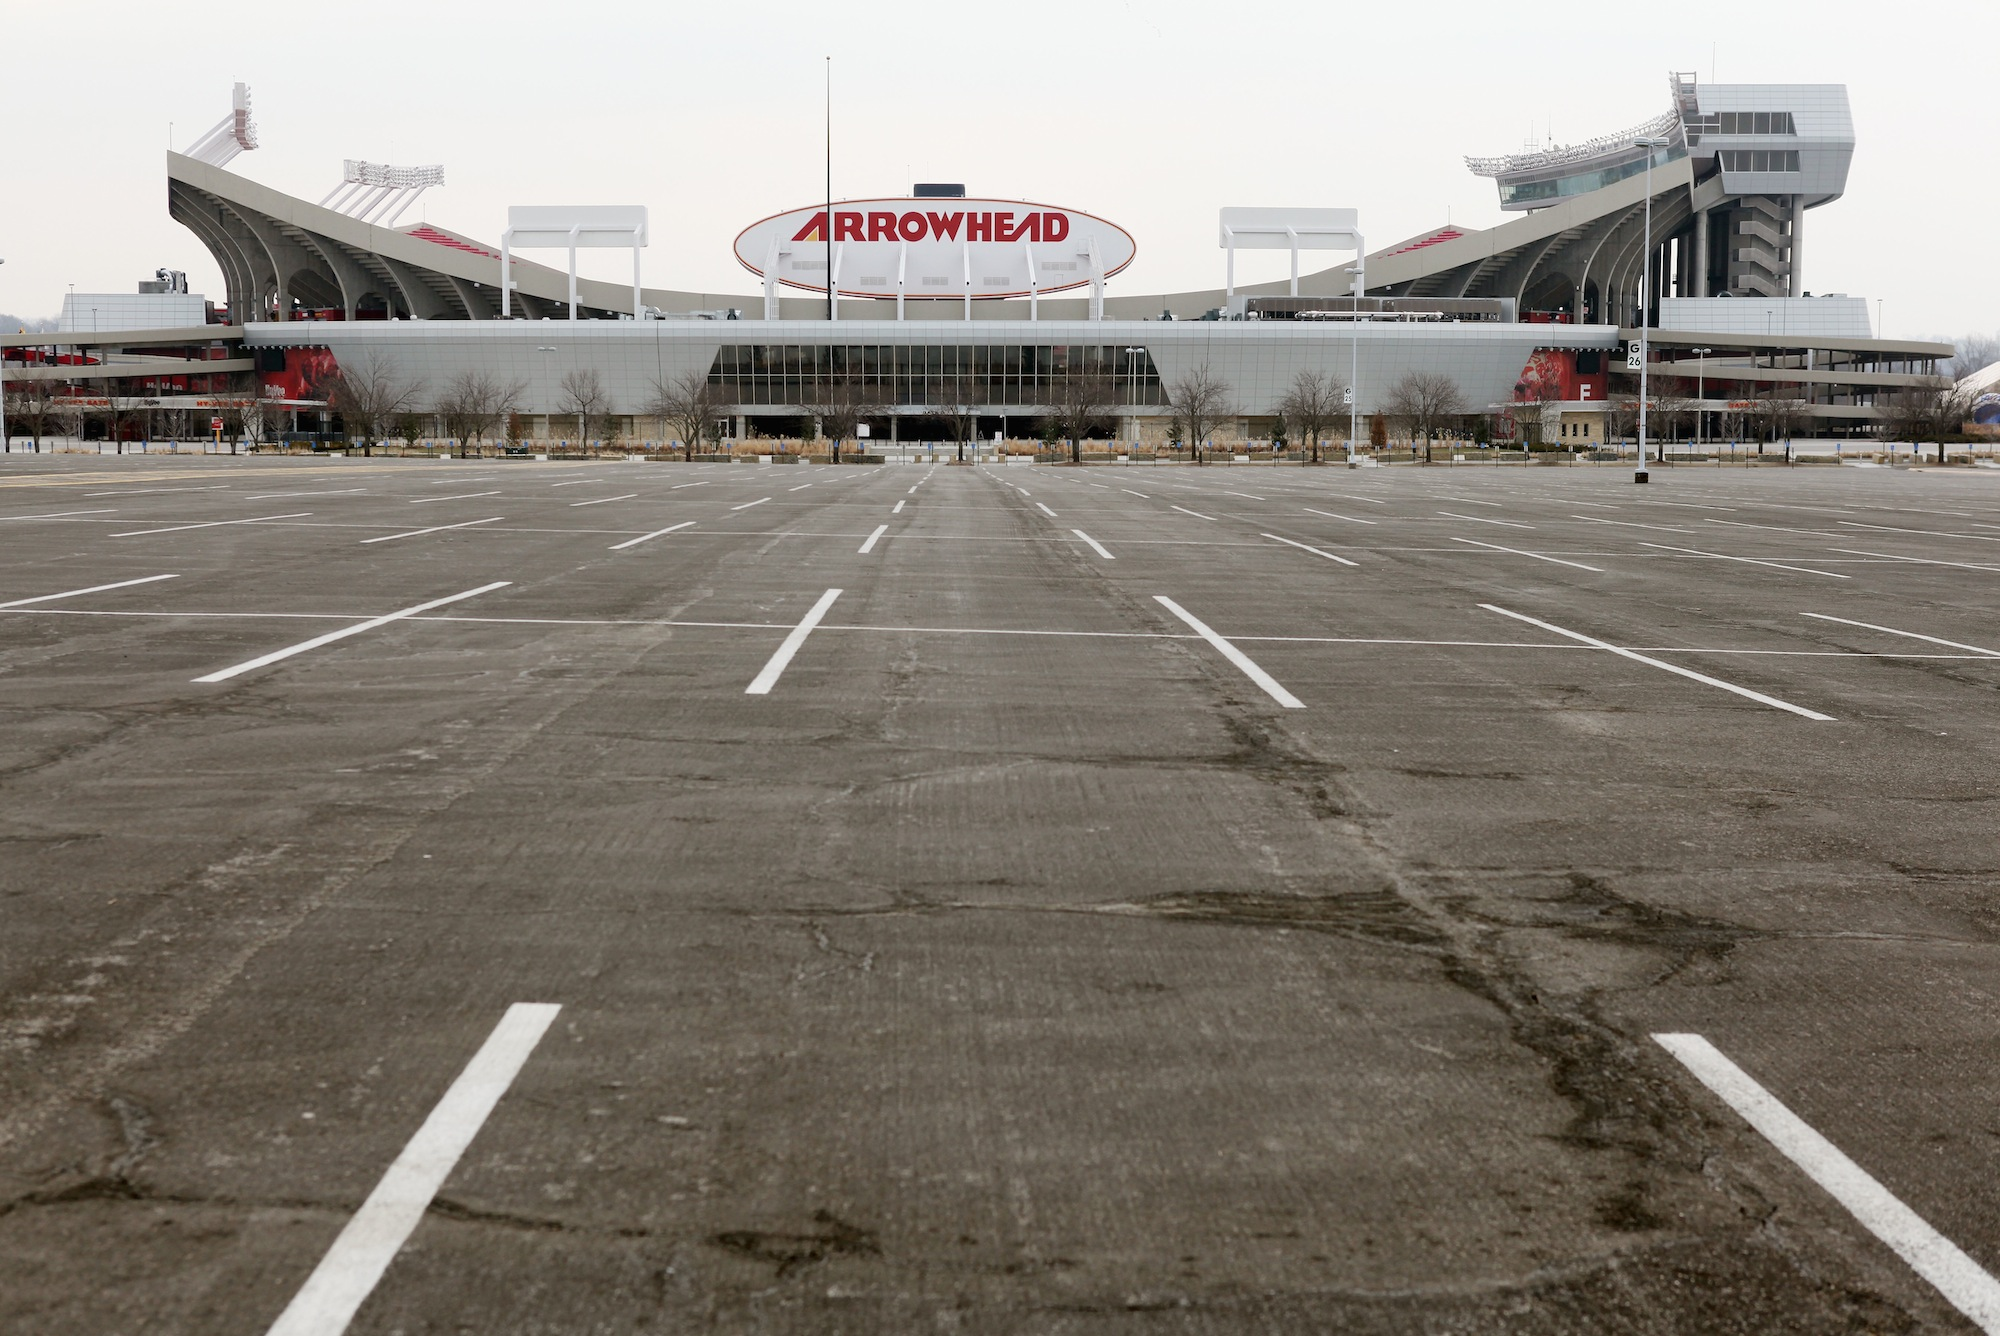 This Is Not The First Murder-Suicide Outside Arrowhead Stadium …